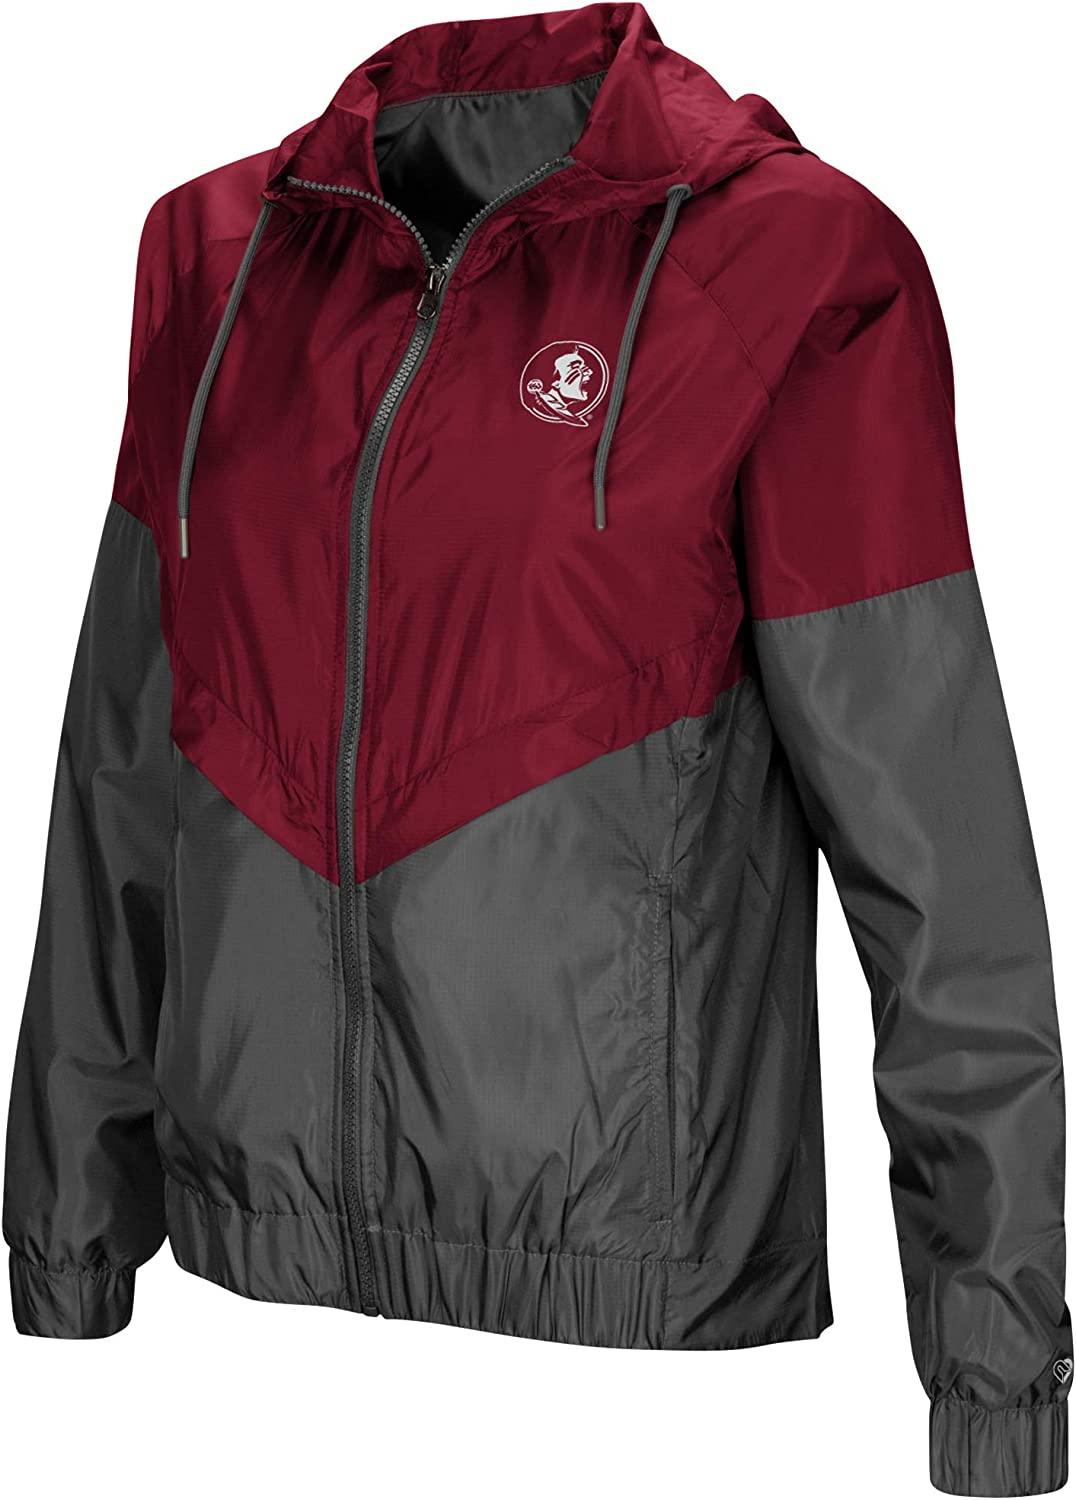 Colosseum NCAA Womens First Class Windbreaker Jacket